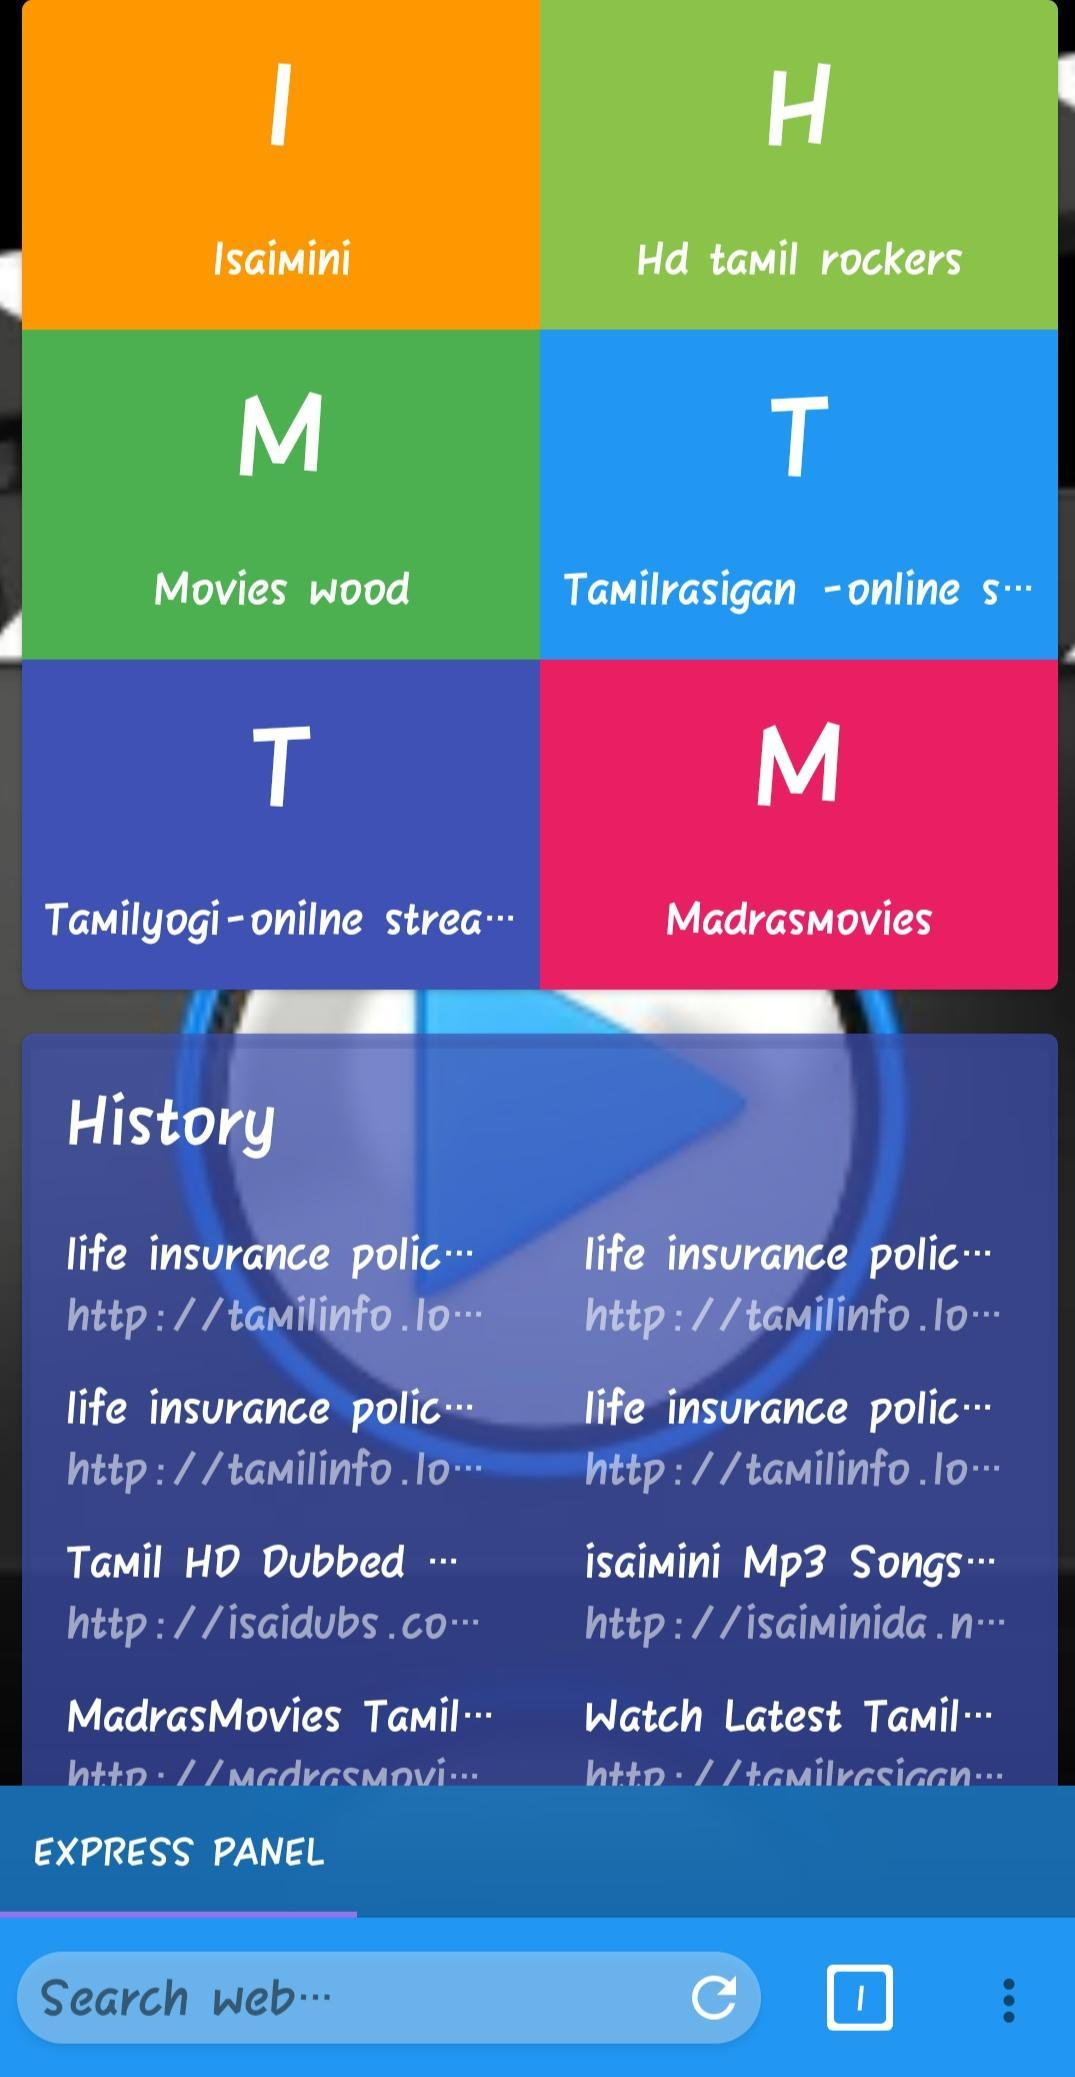 Tamilrockers movie download app 2019 for Android - APK Download